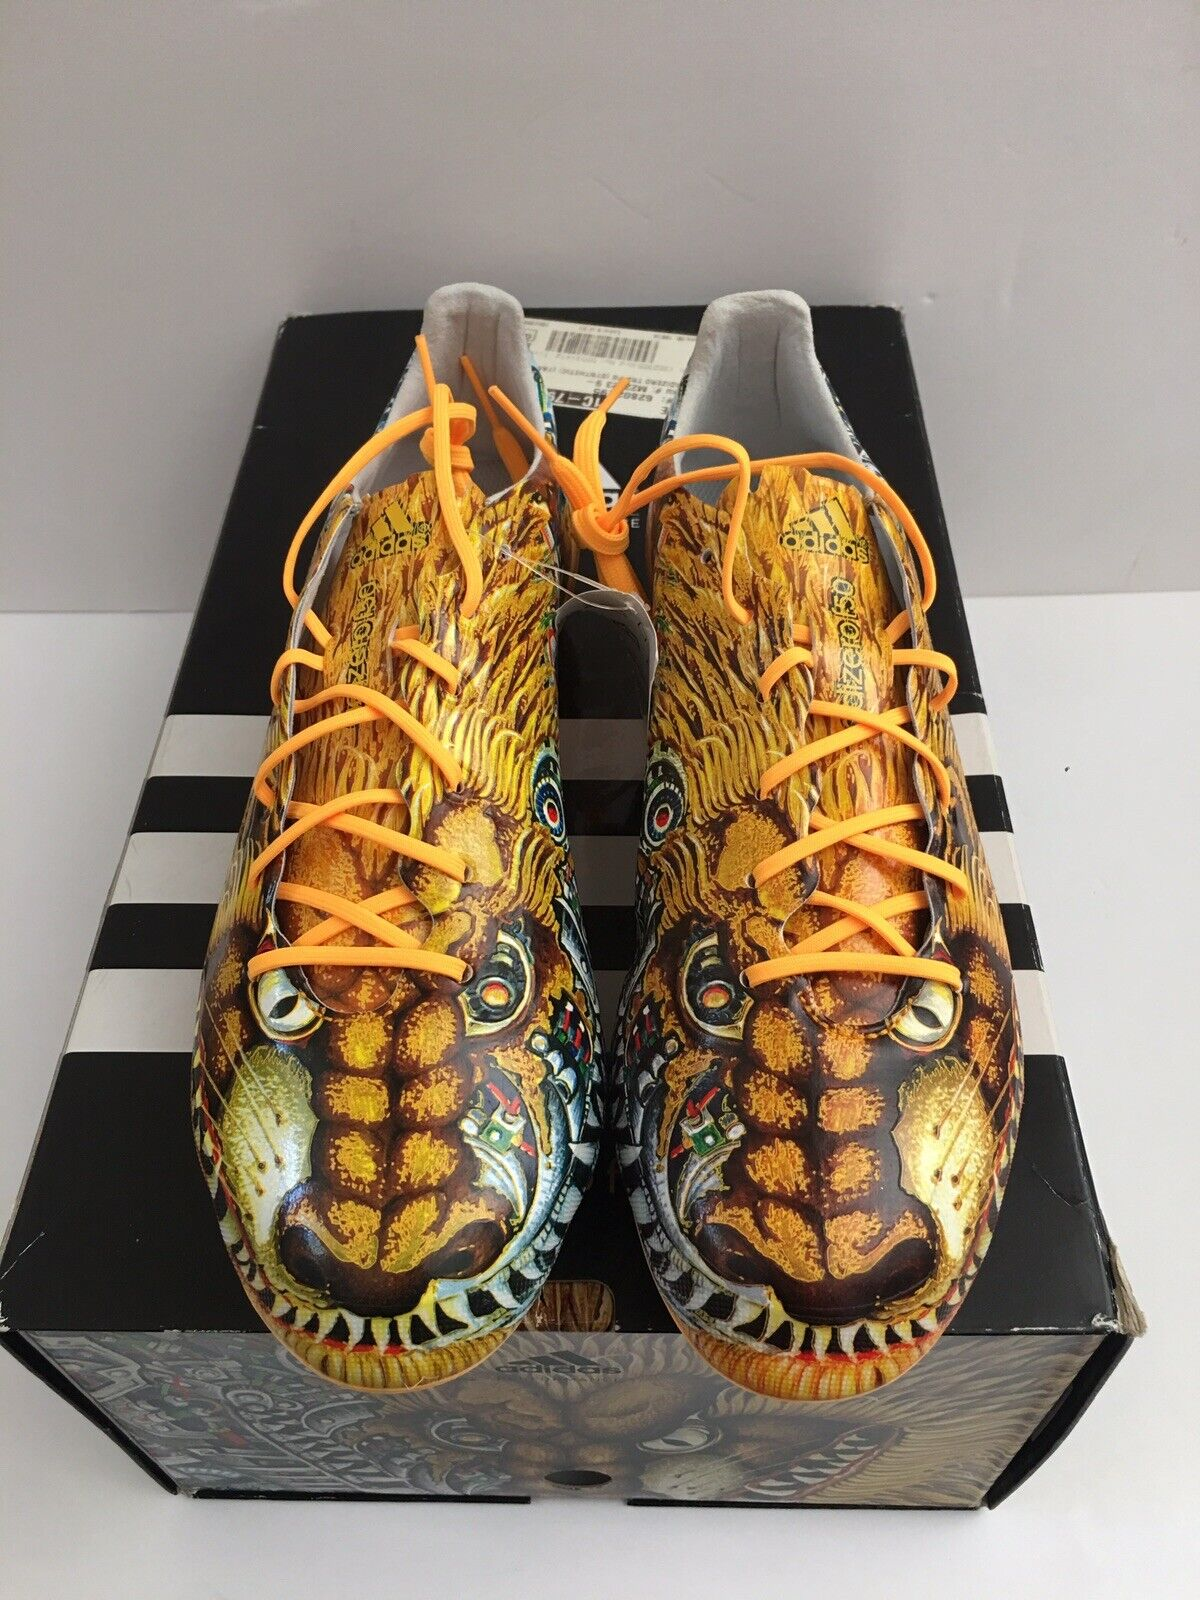 Pico tomar Jugar con  adidas F50 Yamamoto Japan Lion Dog Limited Edition Soccer Shoes Size 10 for  sale online   eBay